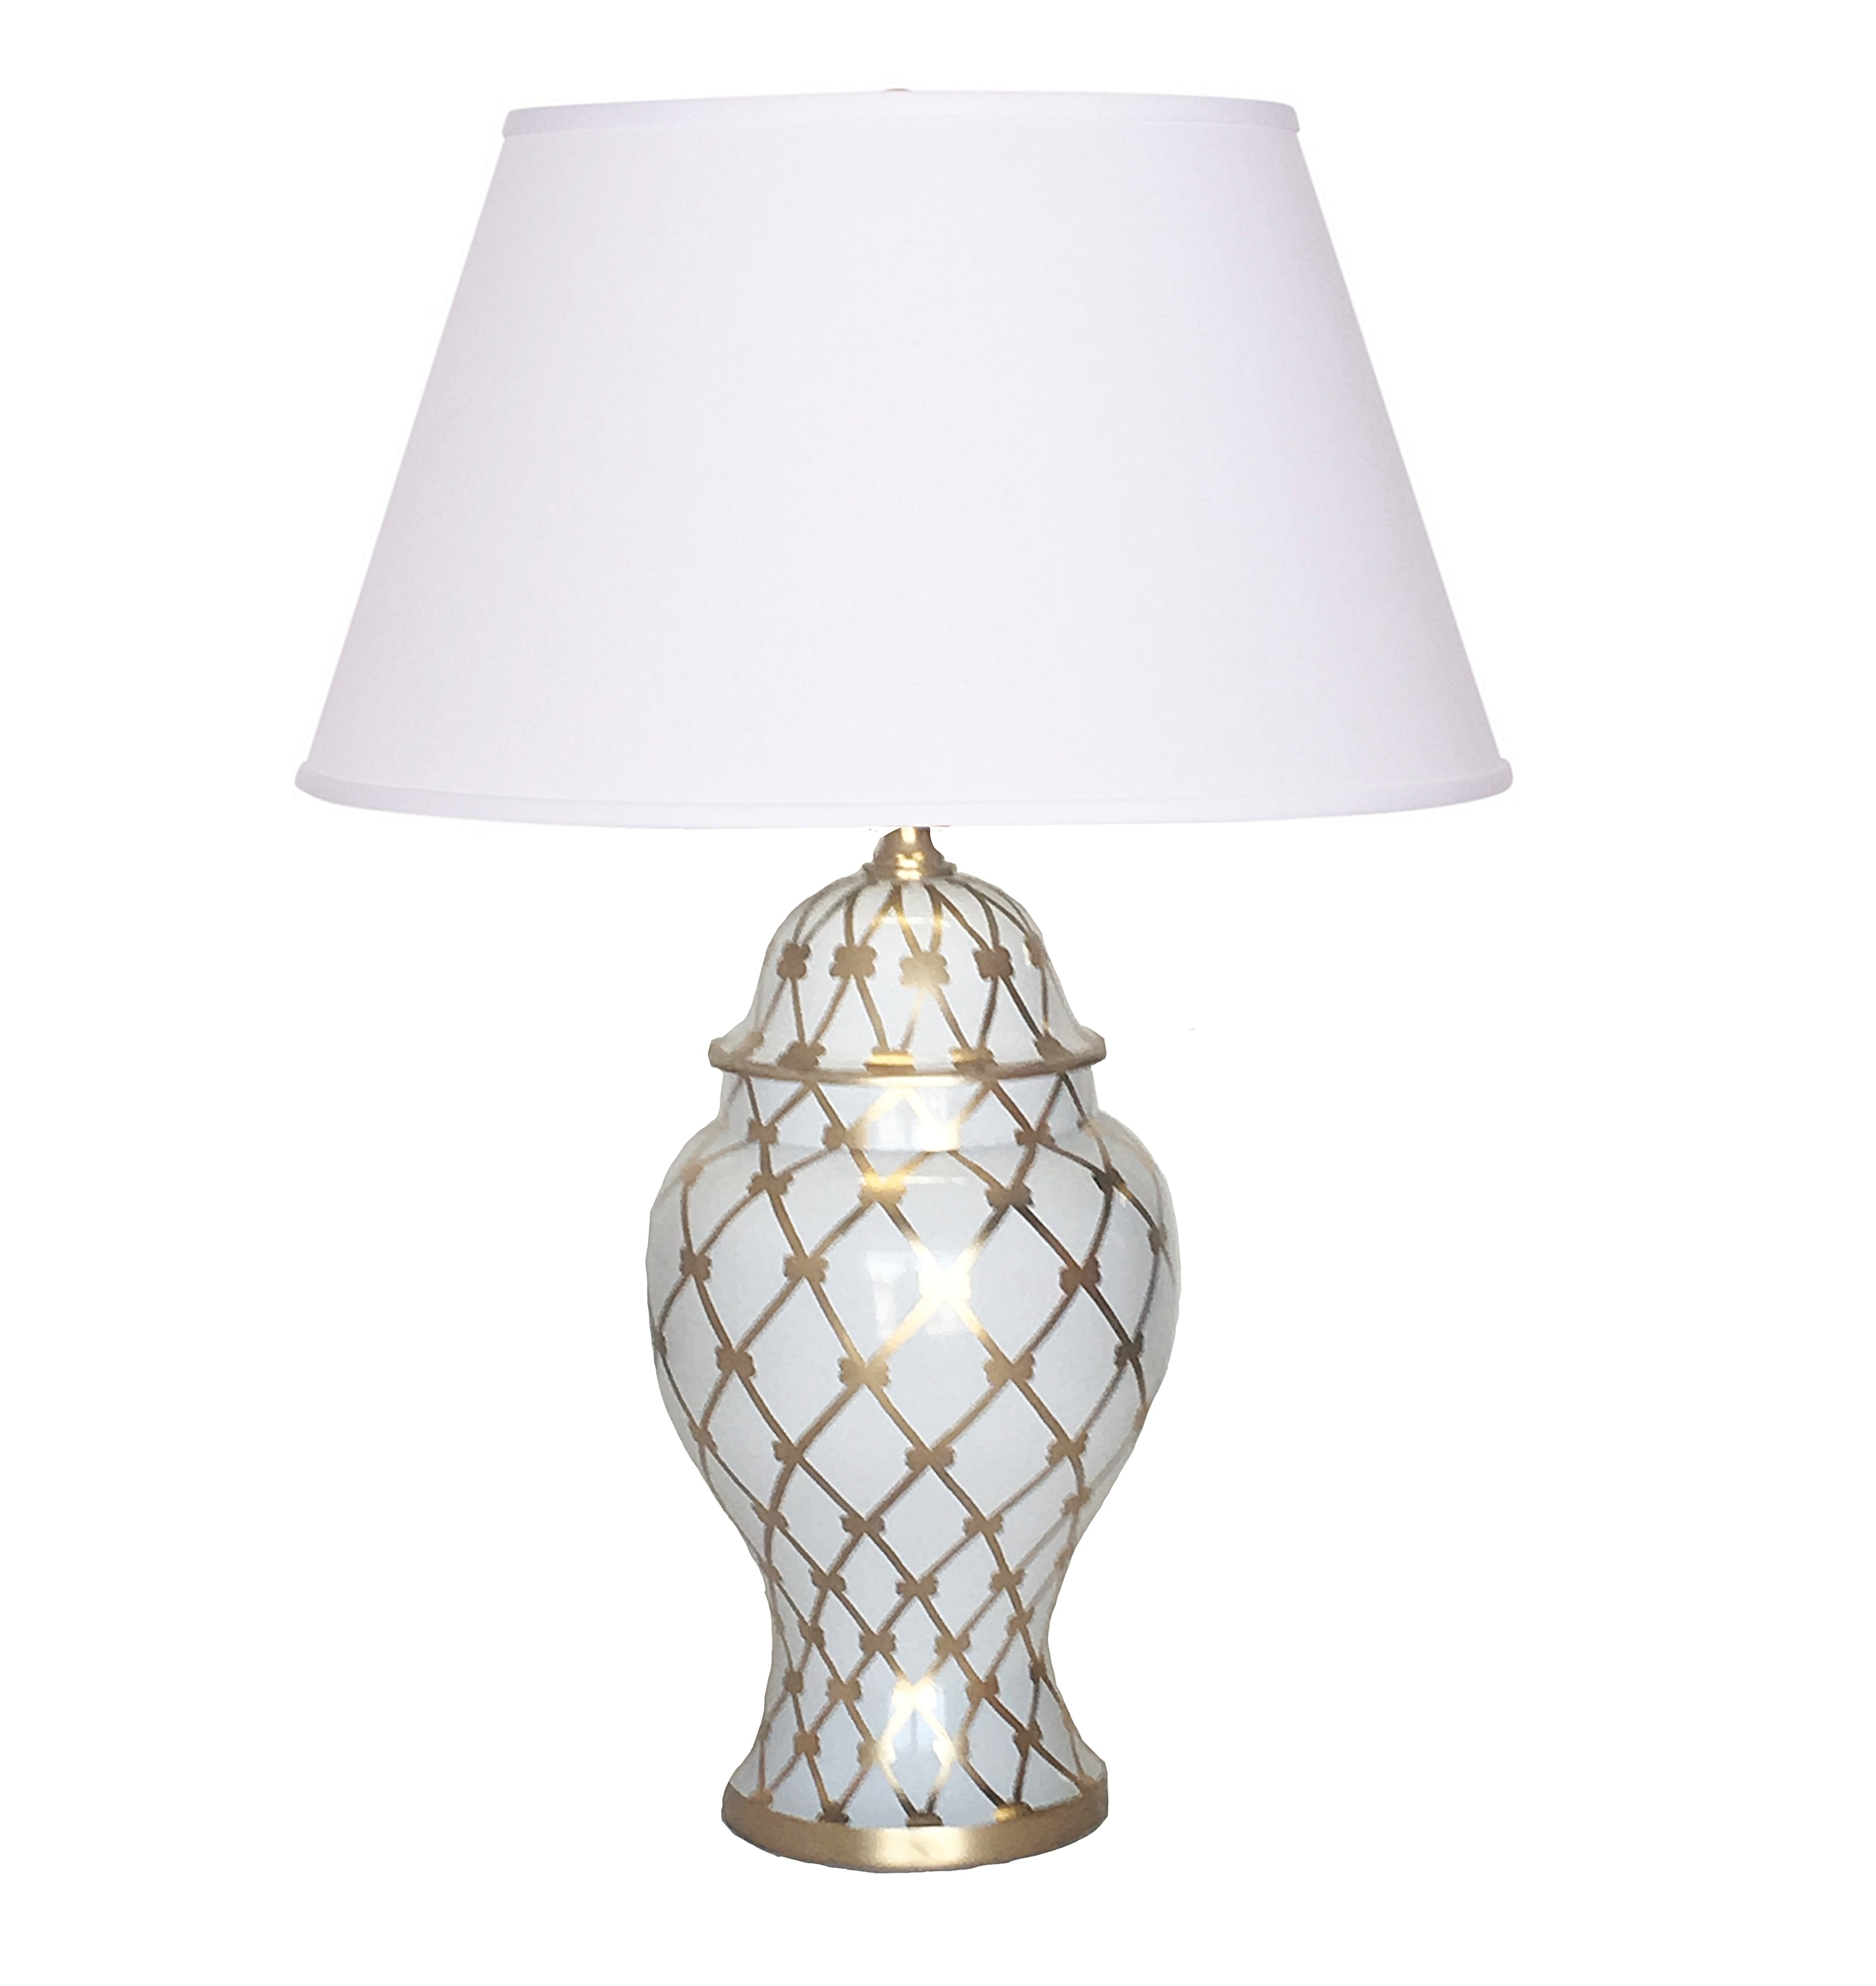 French Twist In Gold Table Lamp Dana Gibson